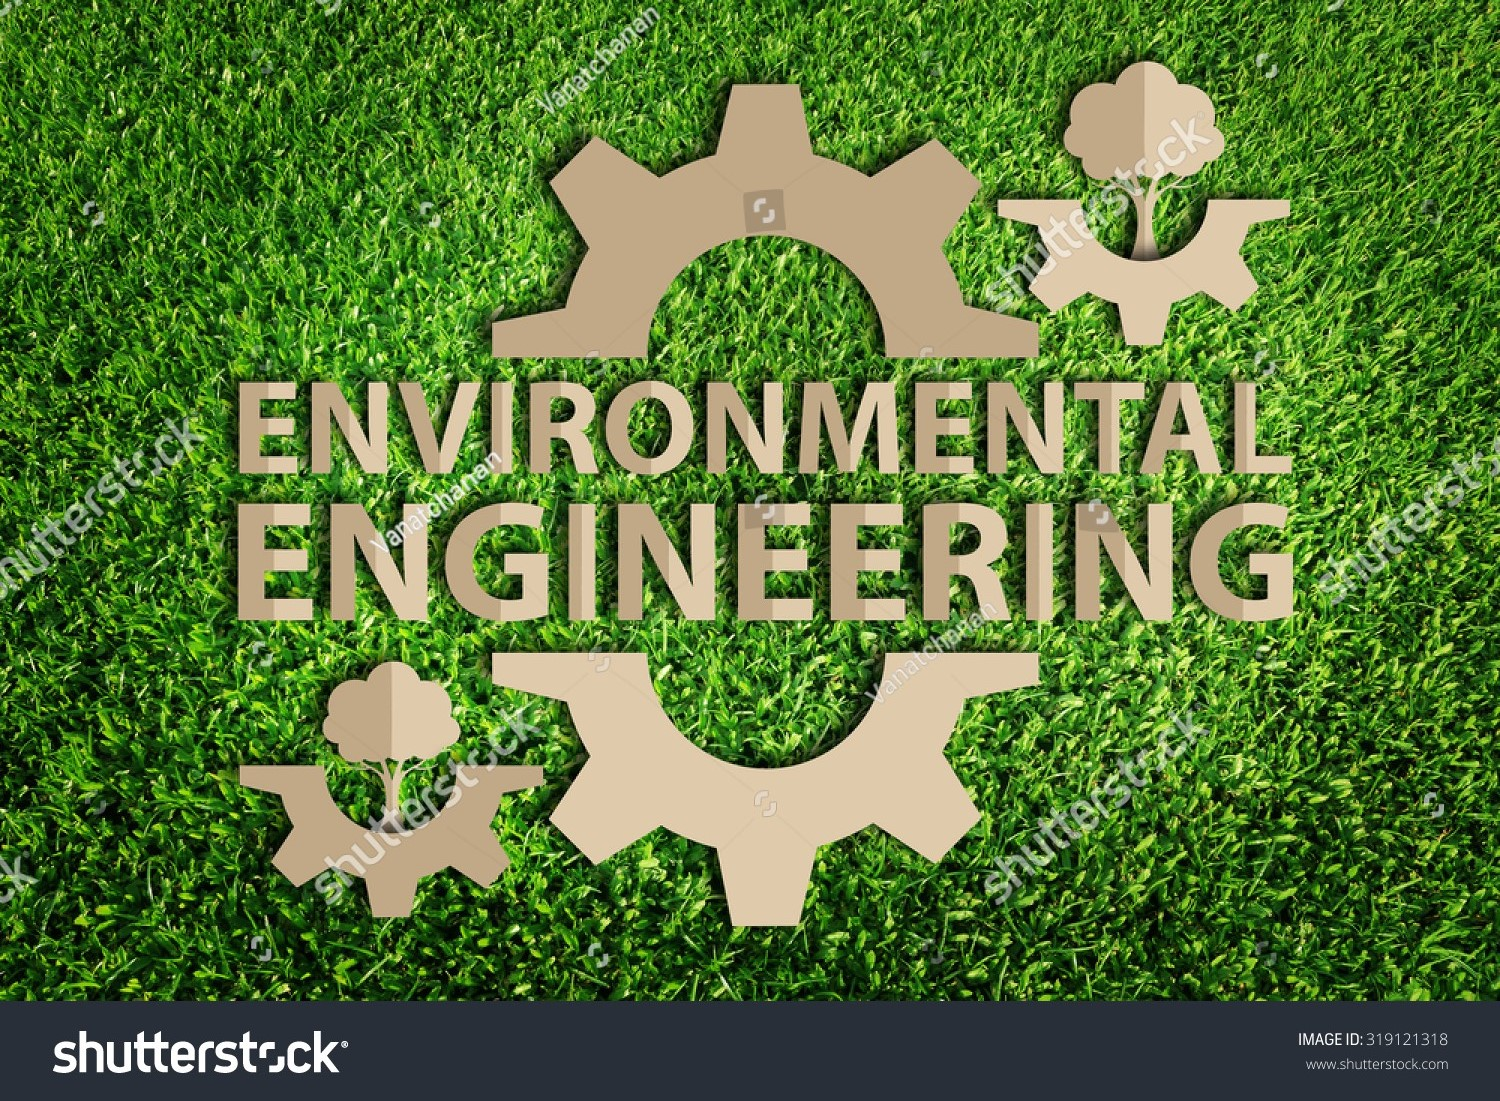 environmental engineering essay The beginning of environmental engineering arguably came with a great public work in london in the 19 th century (1) joseph bazalgette was charged with overseeing the building work of a massive sewer system after what historians now call the great stink.